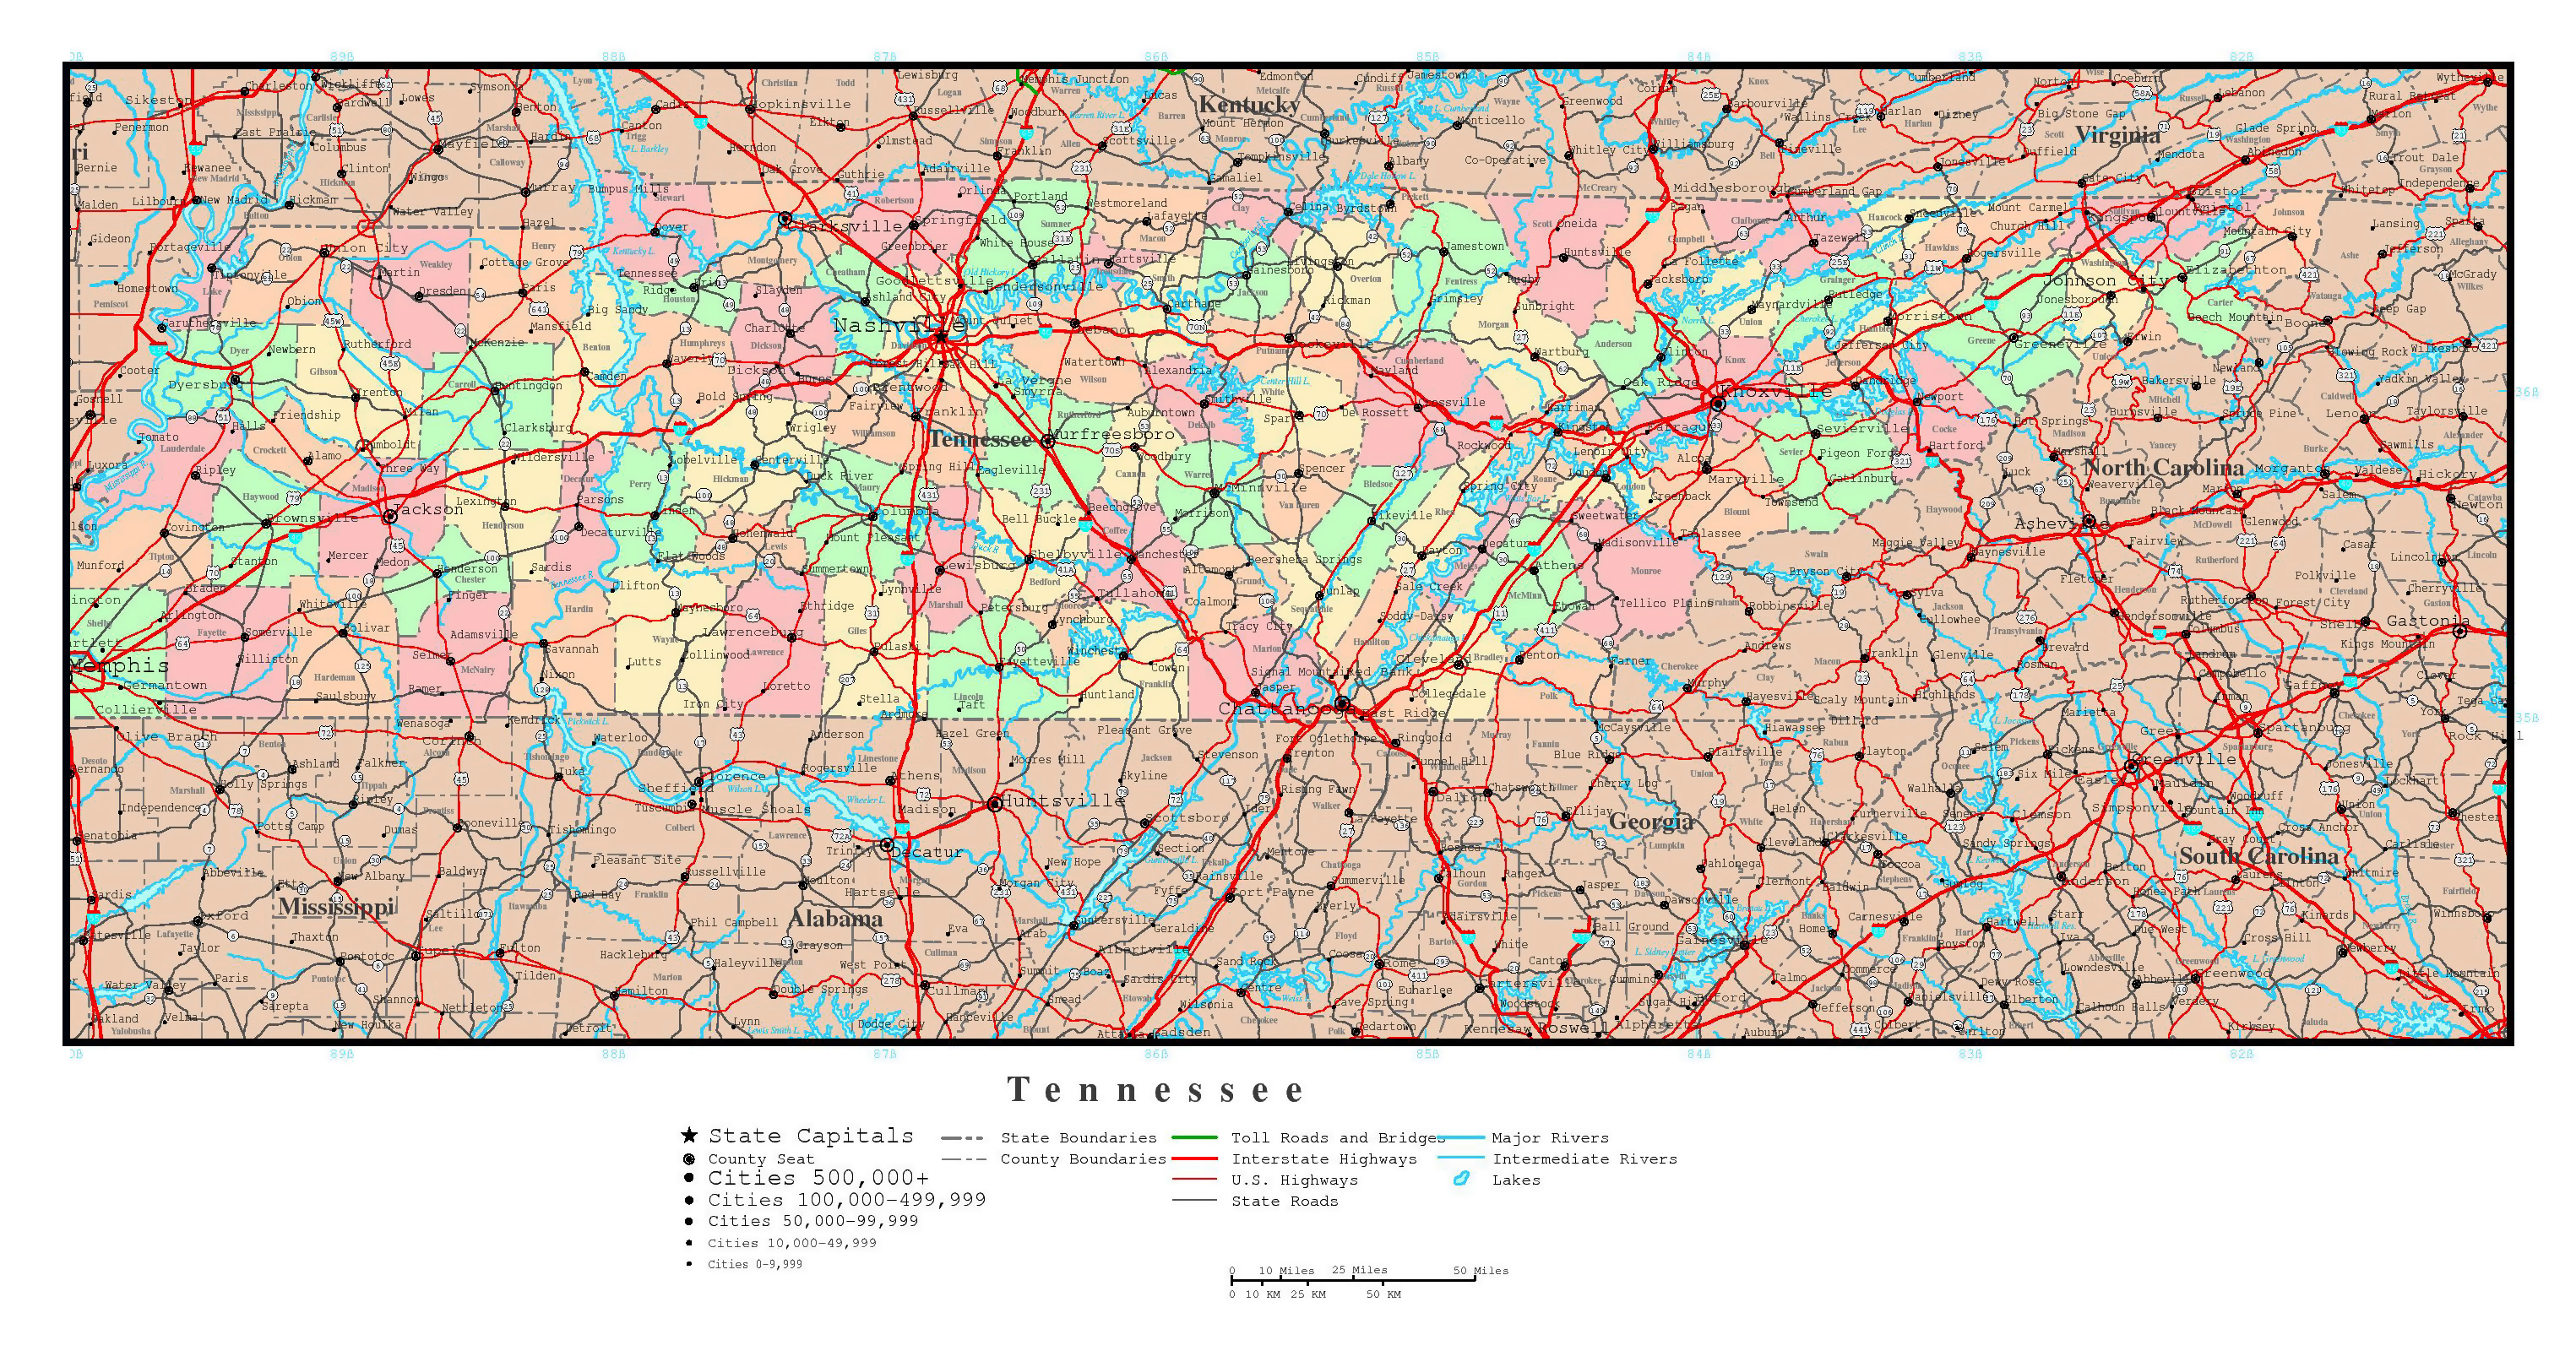 Large Detailed Administrative Map Of Tennessee State With Roads - Map of the united states major cities